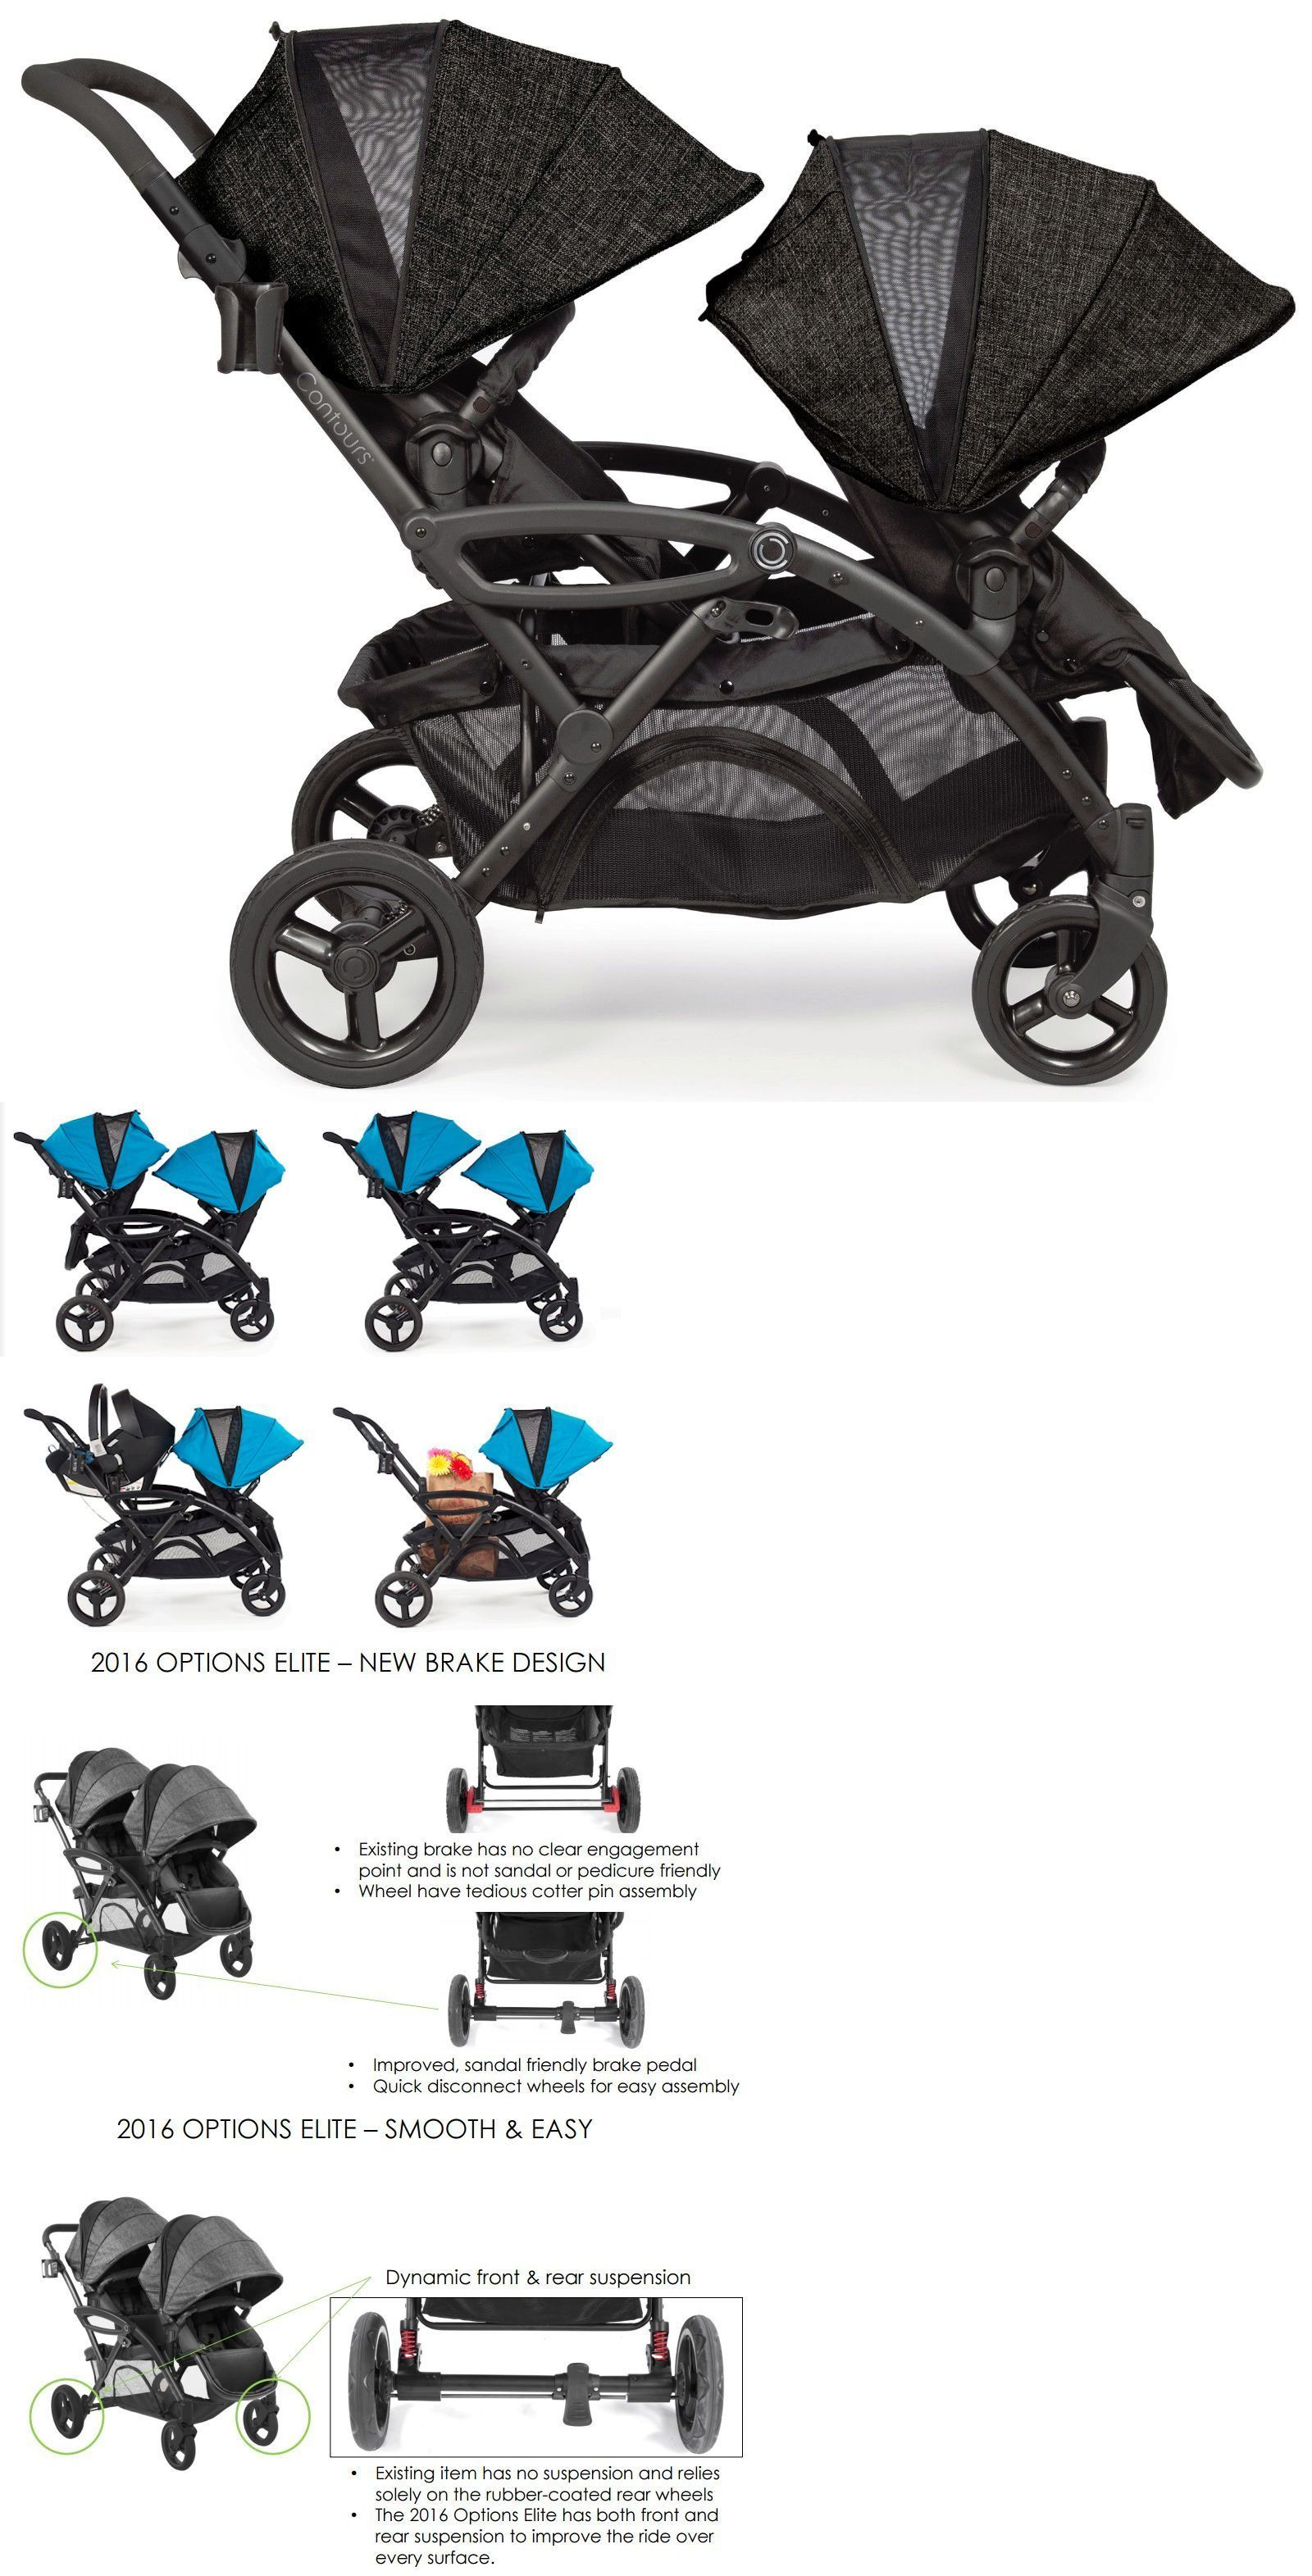 Other Baby Safety and Health Contours Options Elite Twin Tandem Double Baby Stroller Carbon